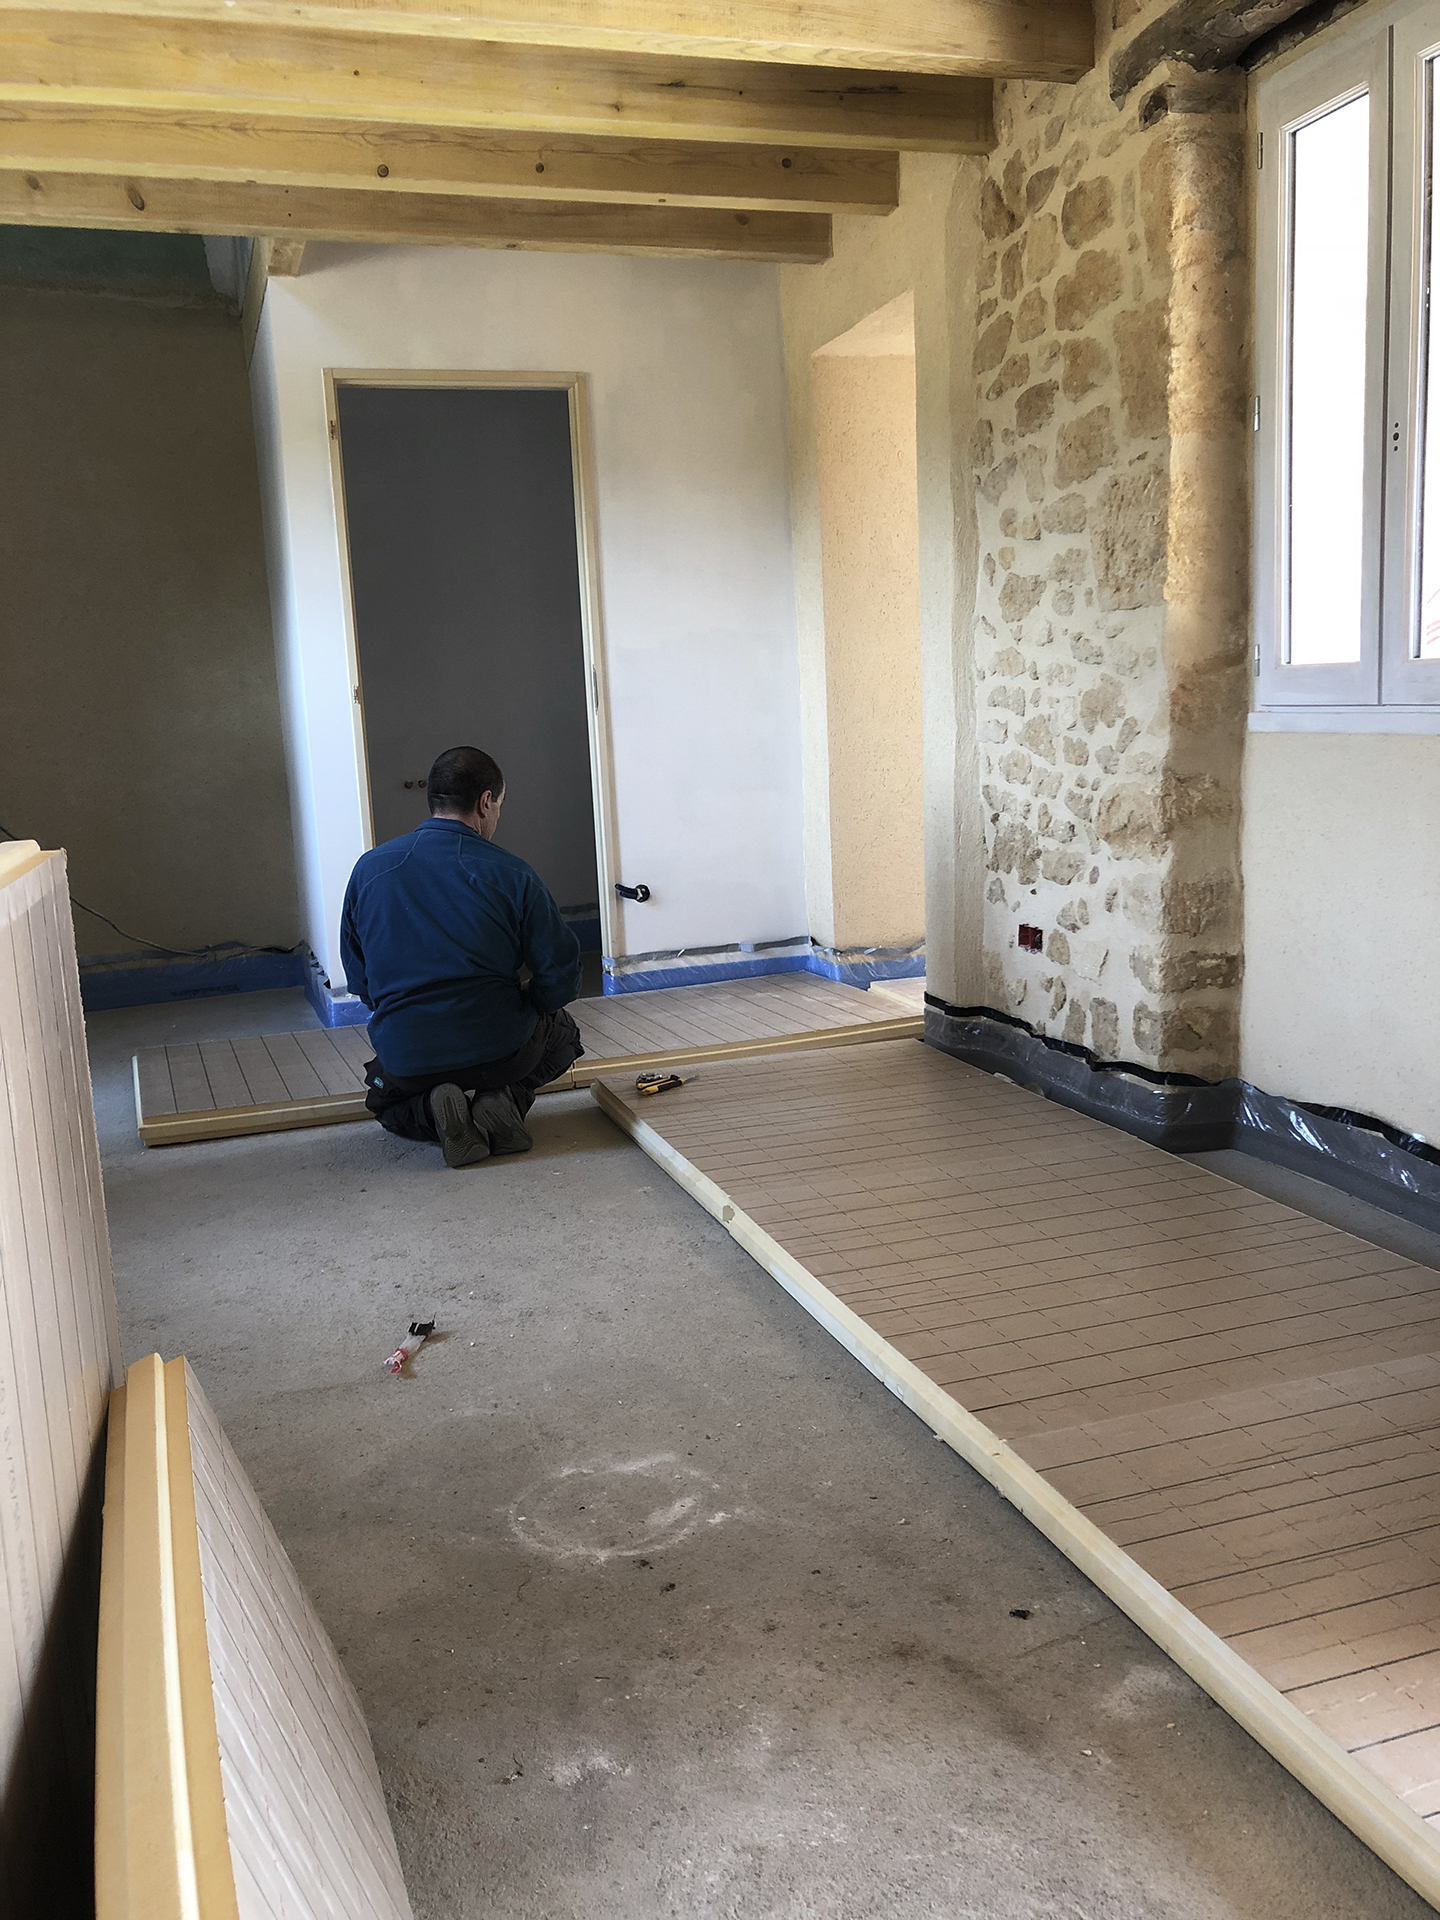 Gilles applies foam panels to insulate the floor